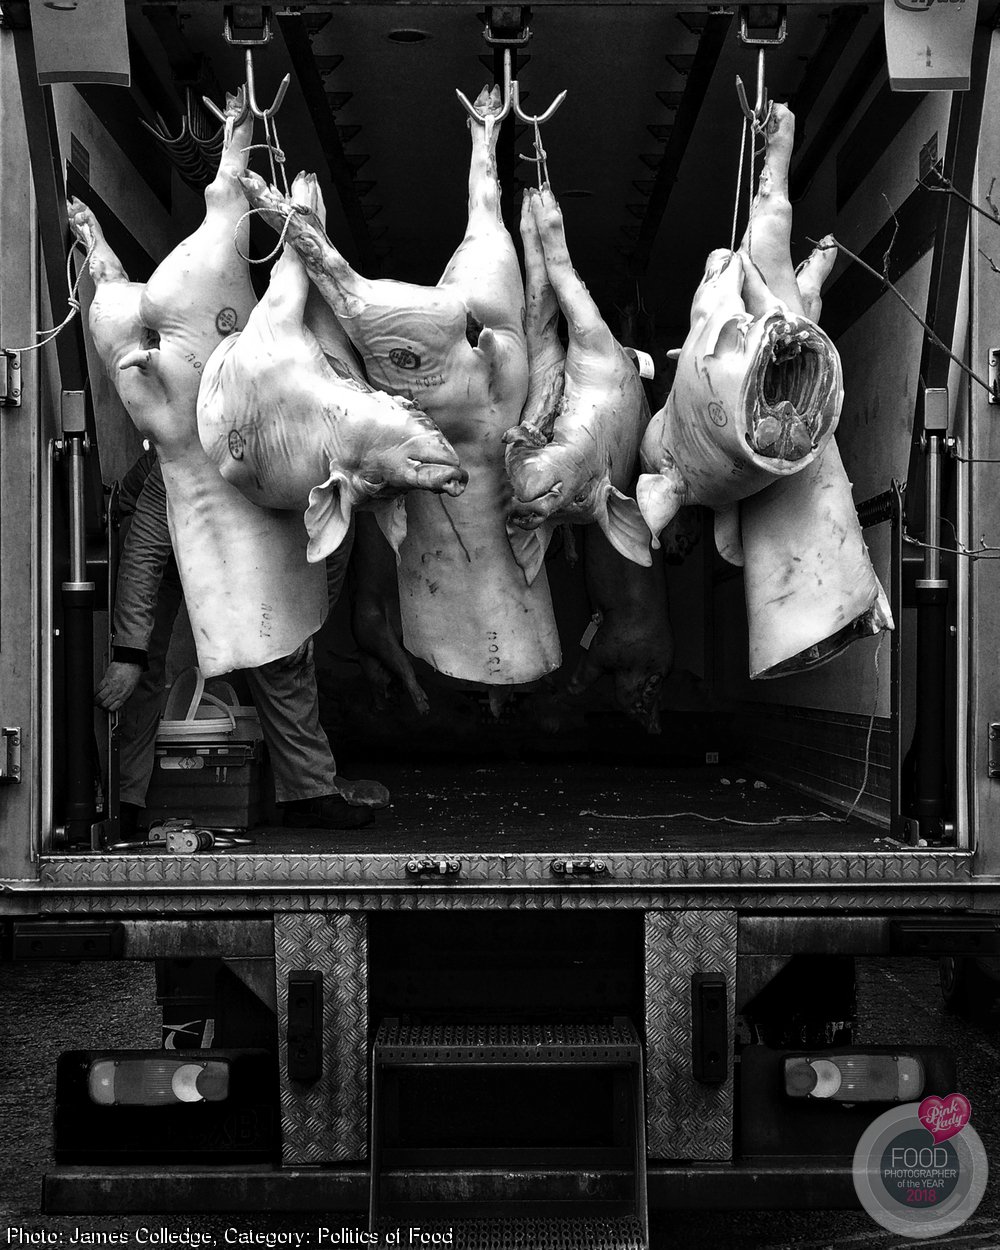 This is my observance at the altar of pork butchery: these little Scottish piggies went to market, having made the greatest sacrifice of all...